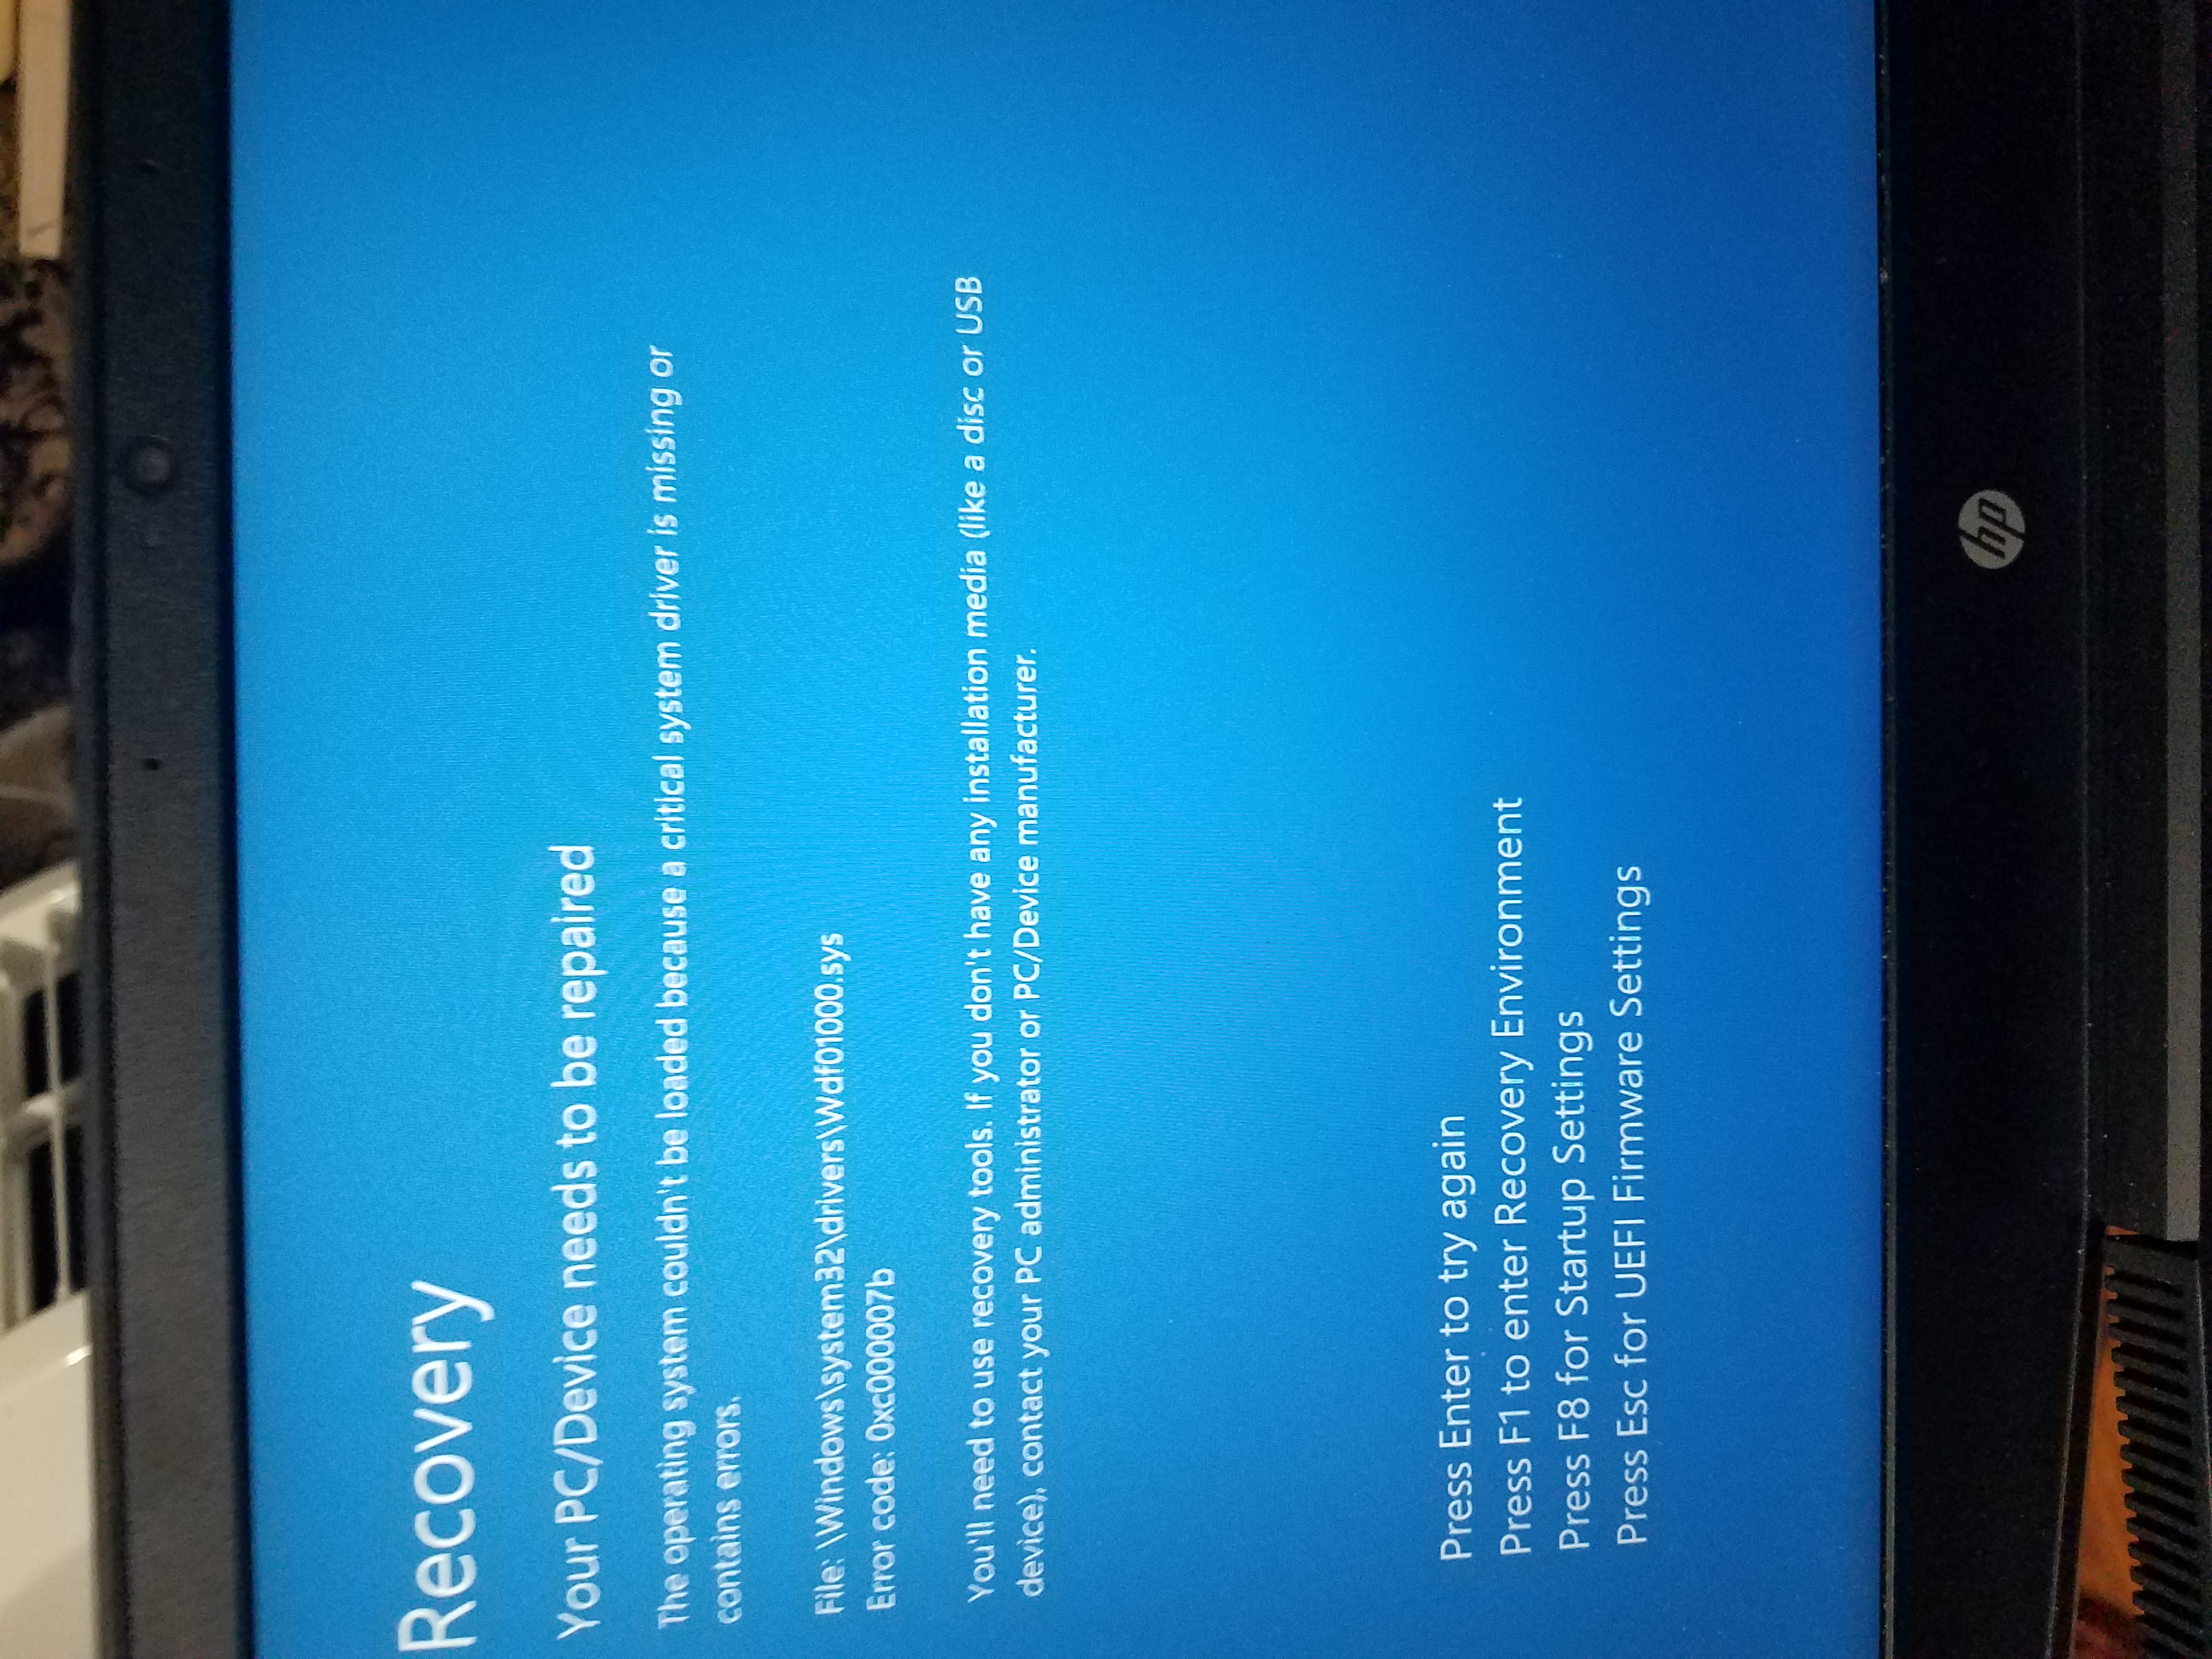 My pc starts up with a blue screen with error message